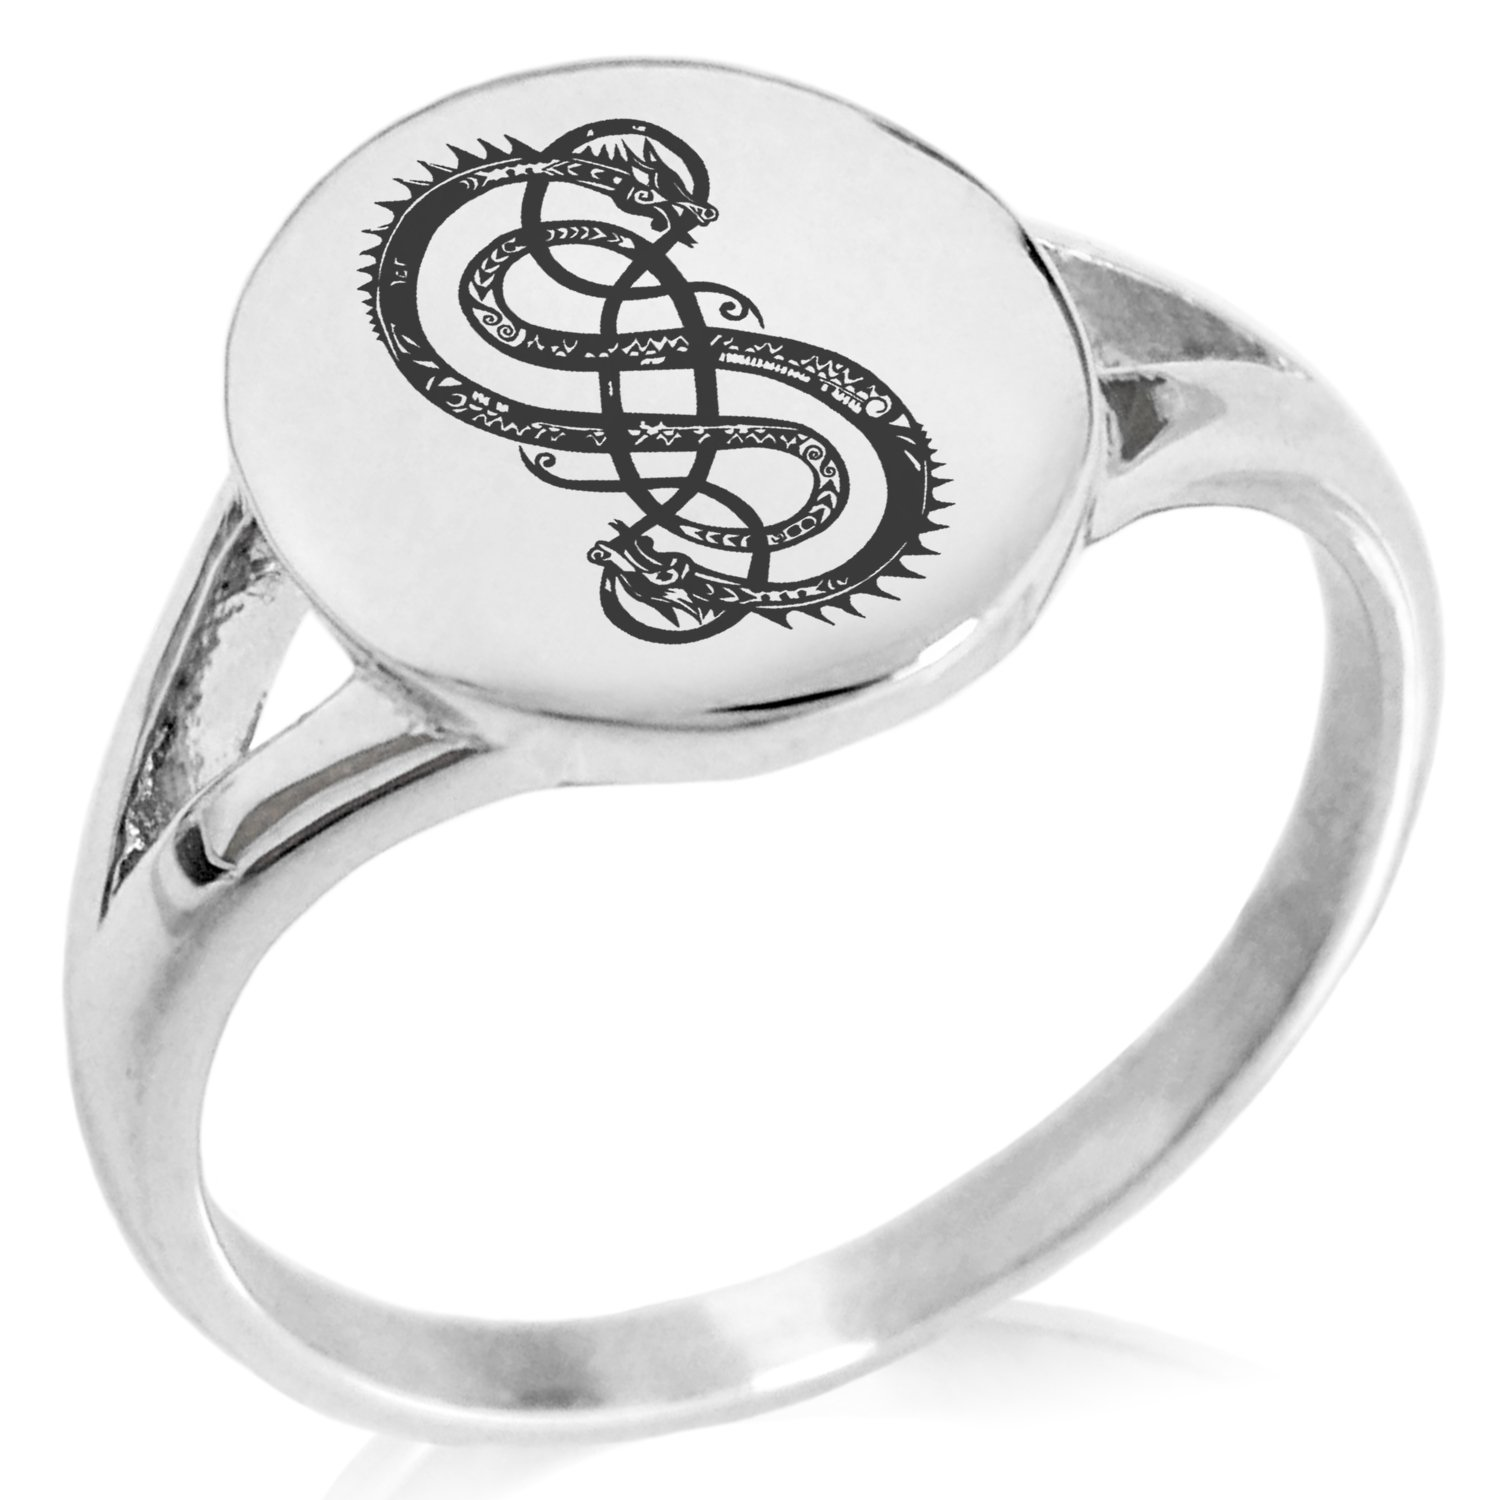 Tioneer Stainless Steel God of Mischief Loki Viking Norse Symbol Minimalist Oval Top Polished Statement Ring, Size 8